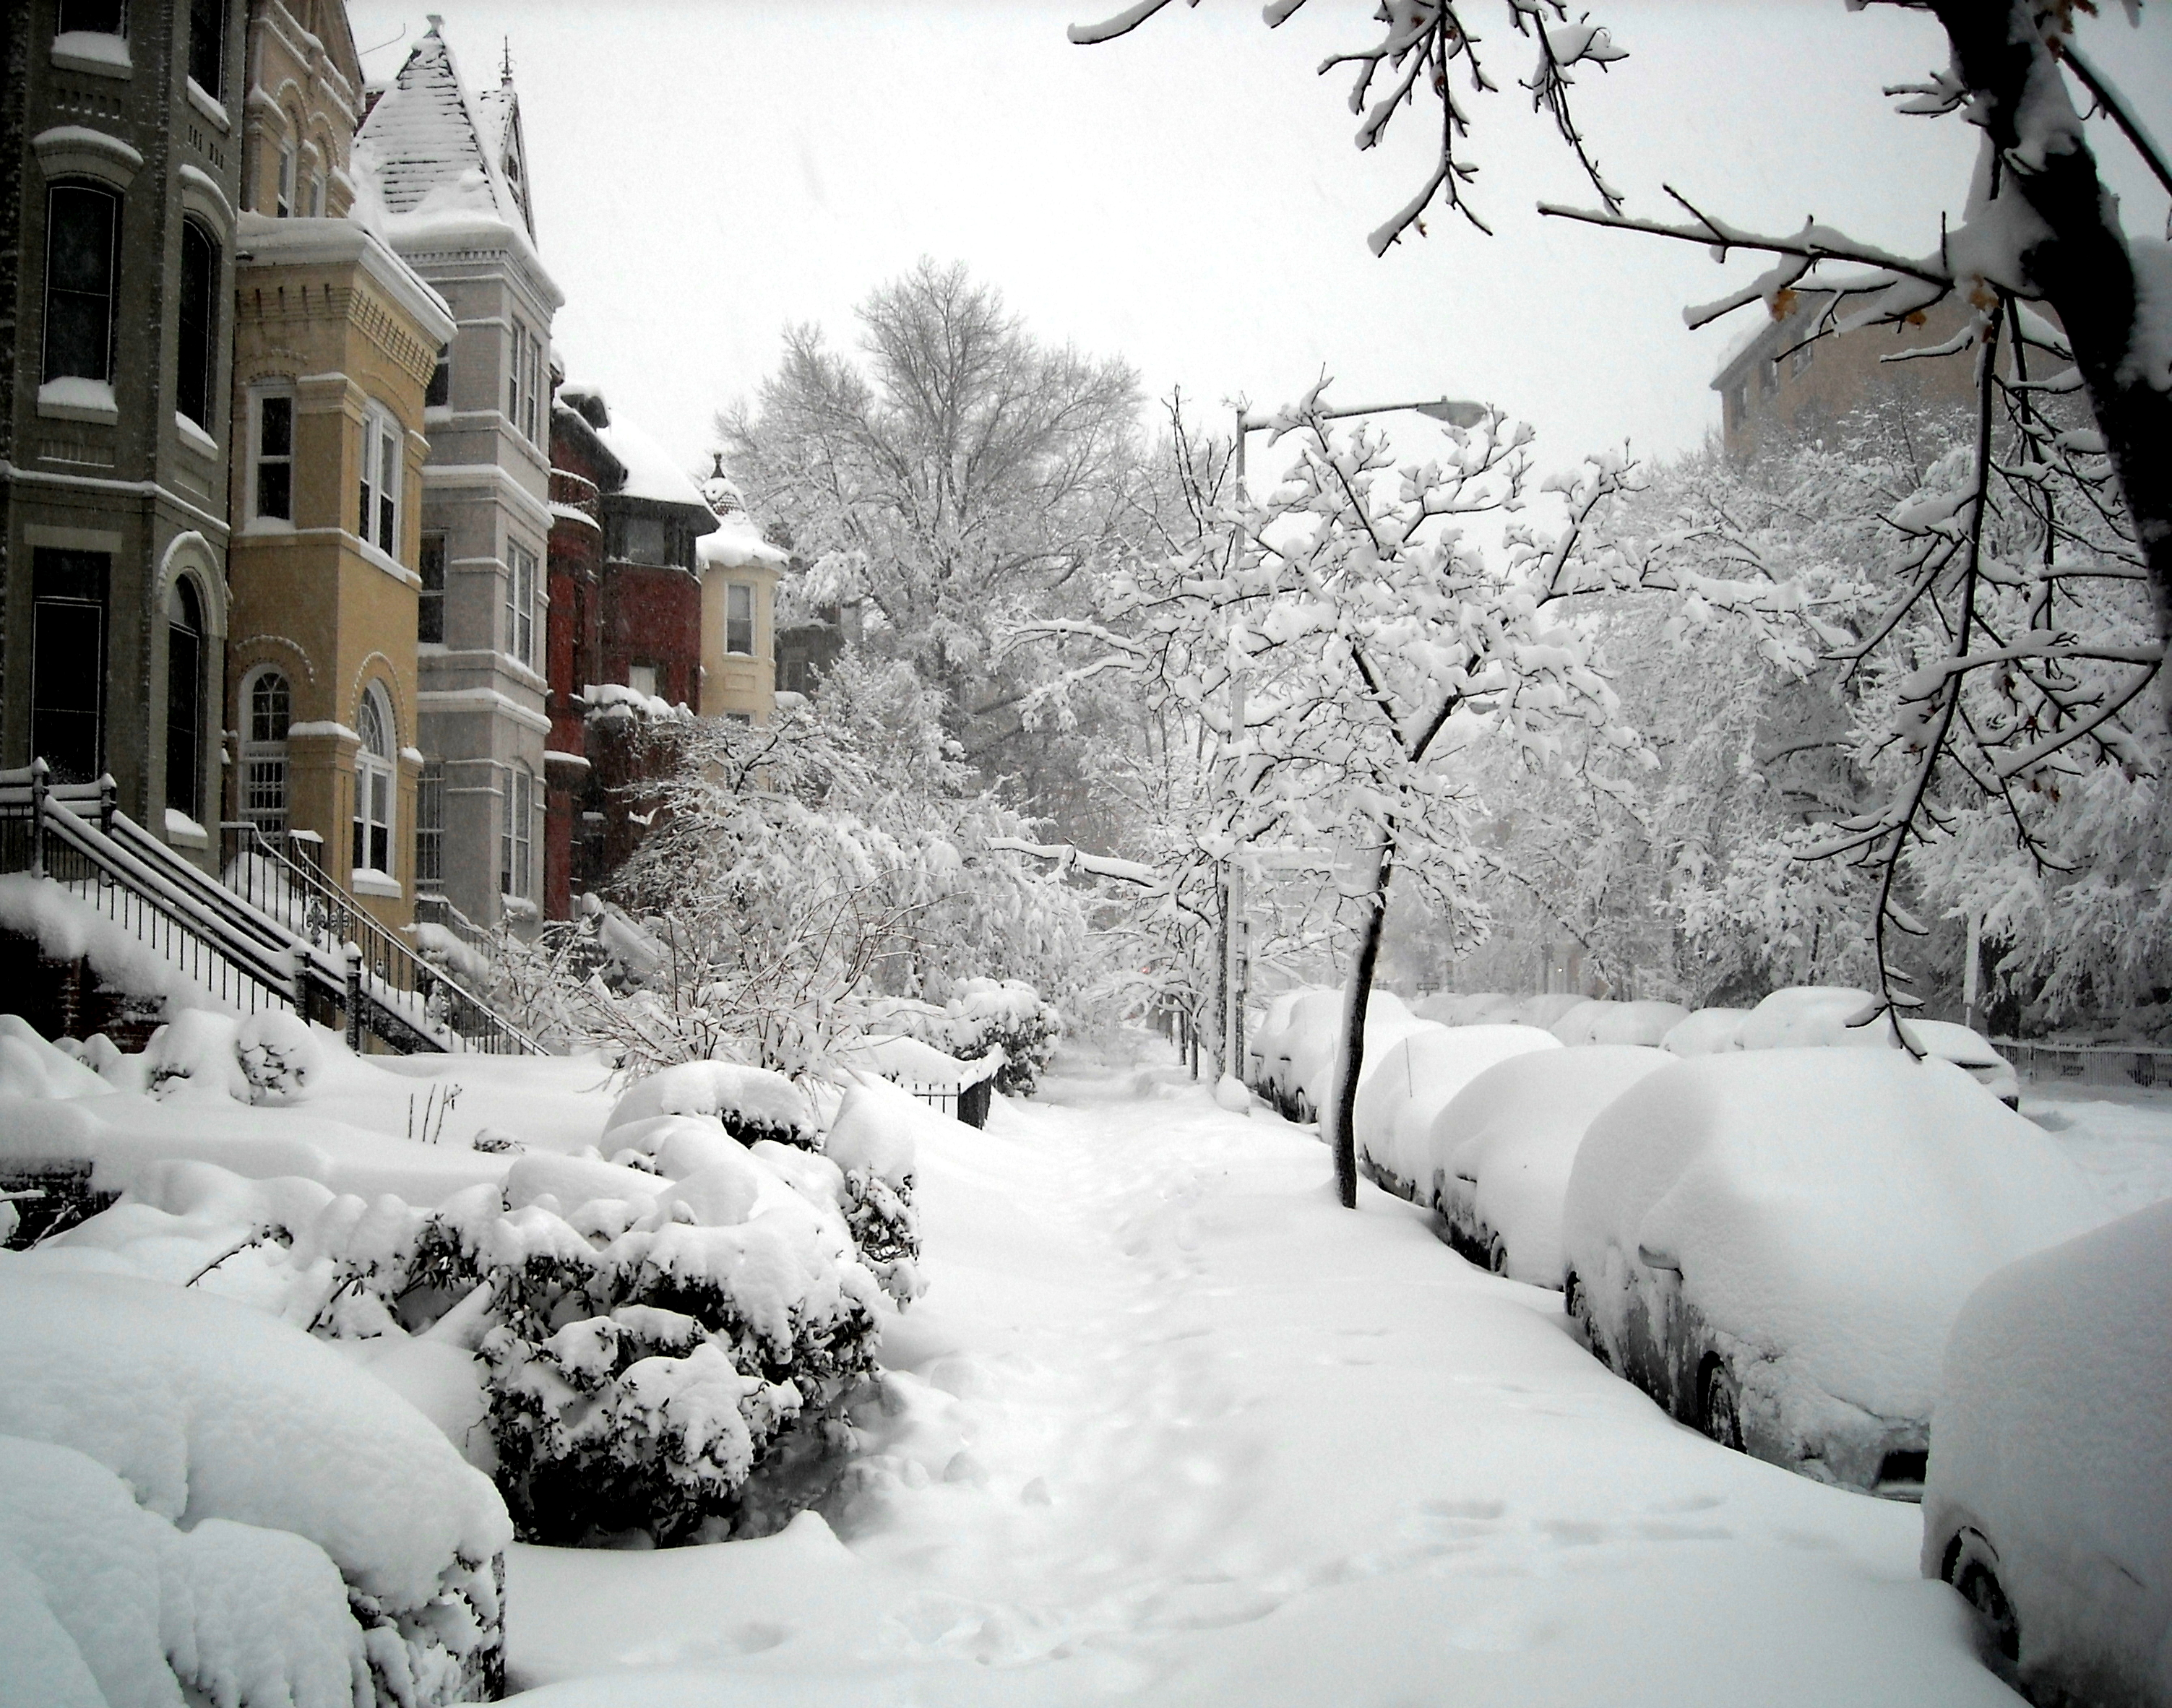 displaying 19 images for snow blizzards